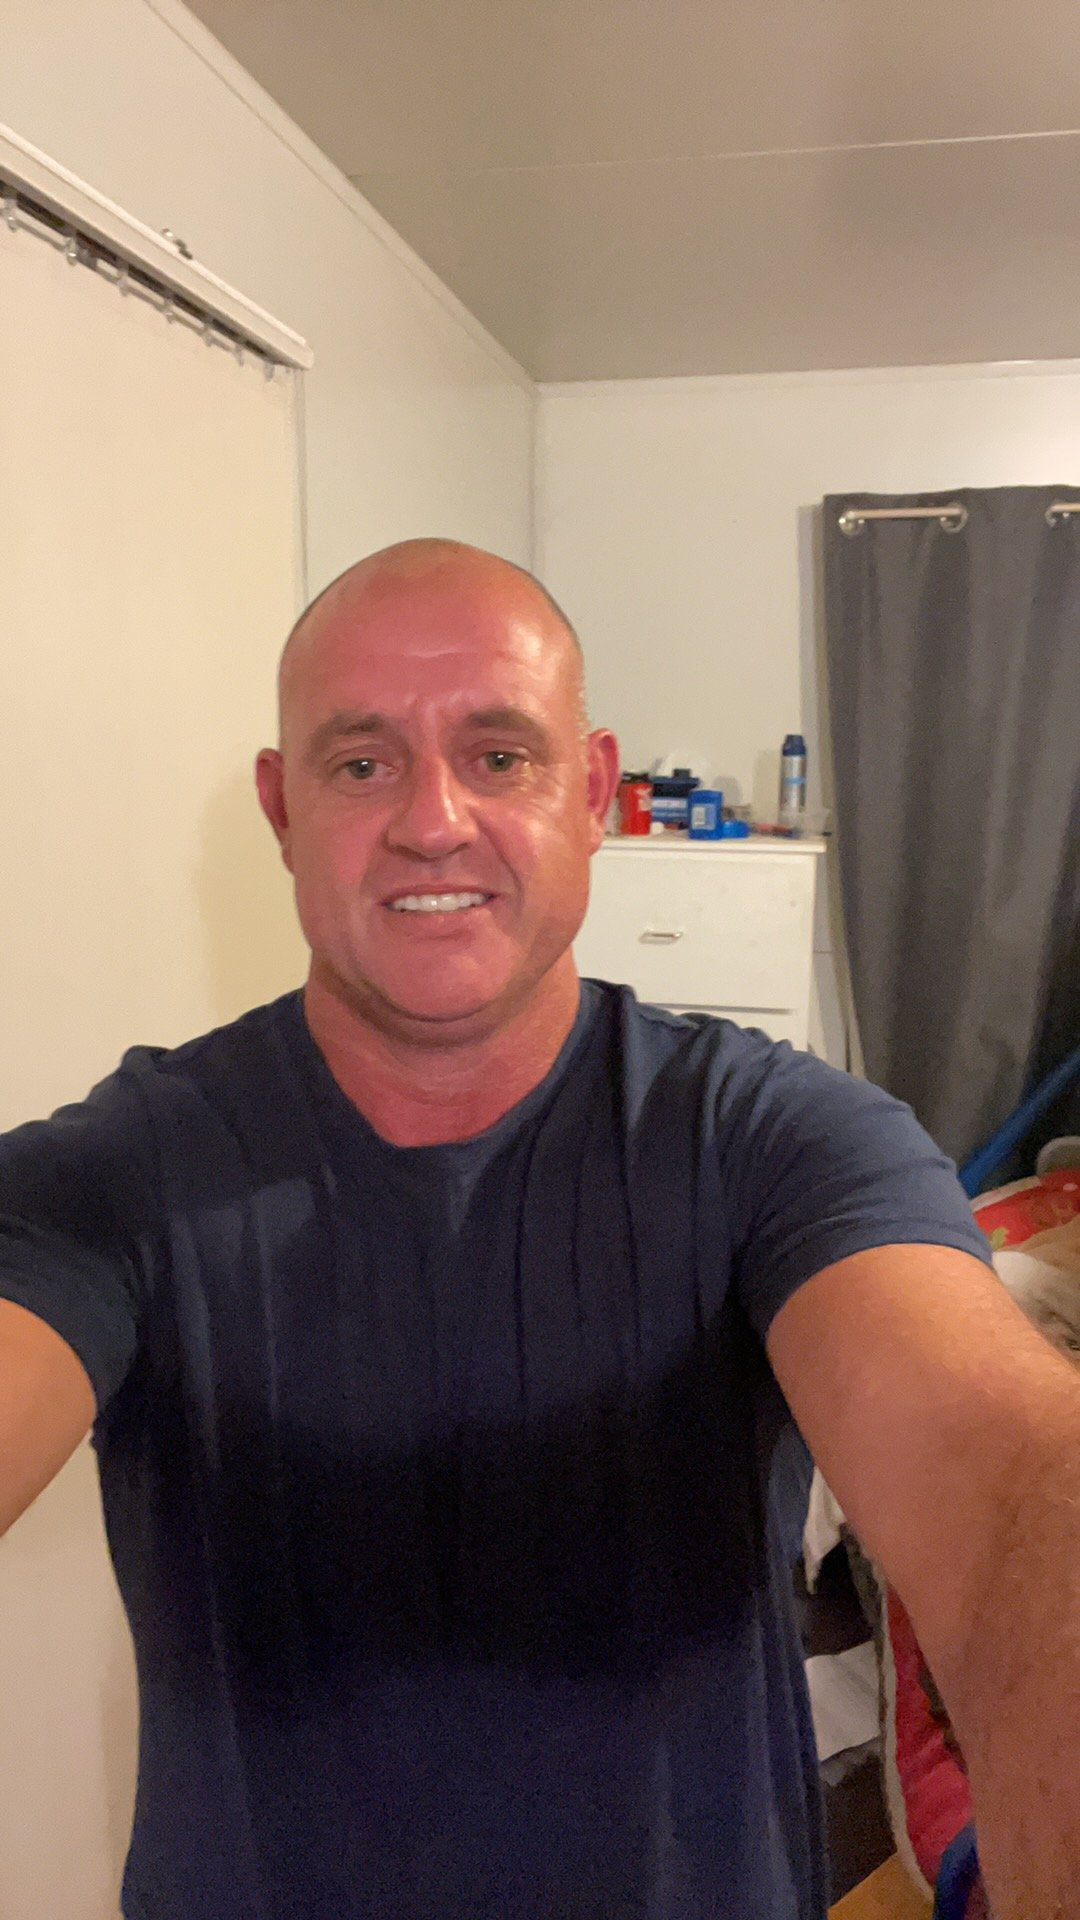 Fitzy2528 from New South Wales,Australia